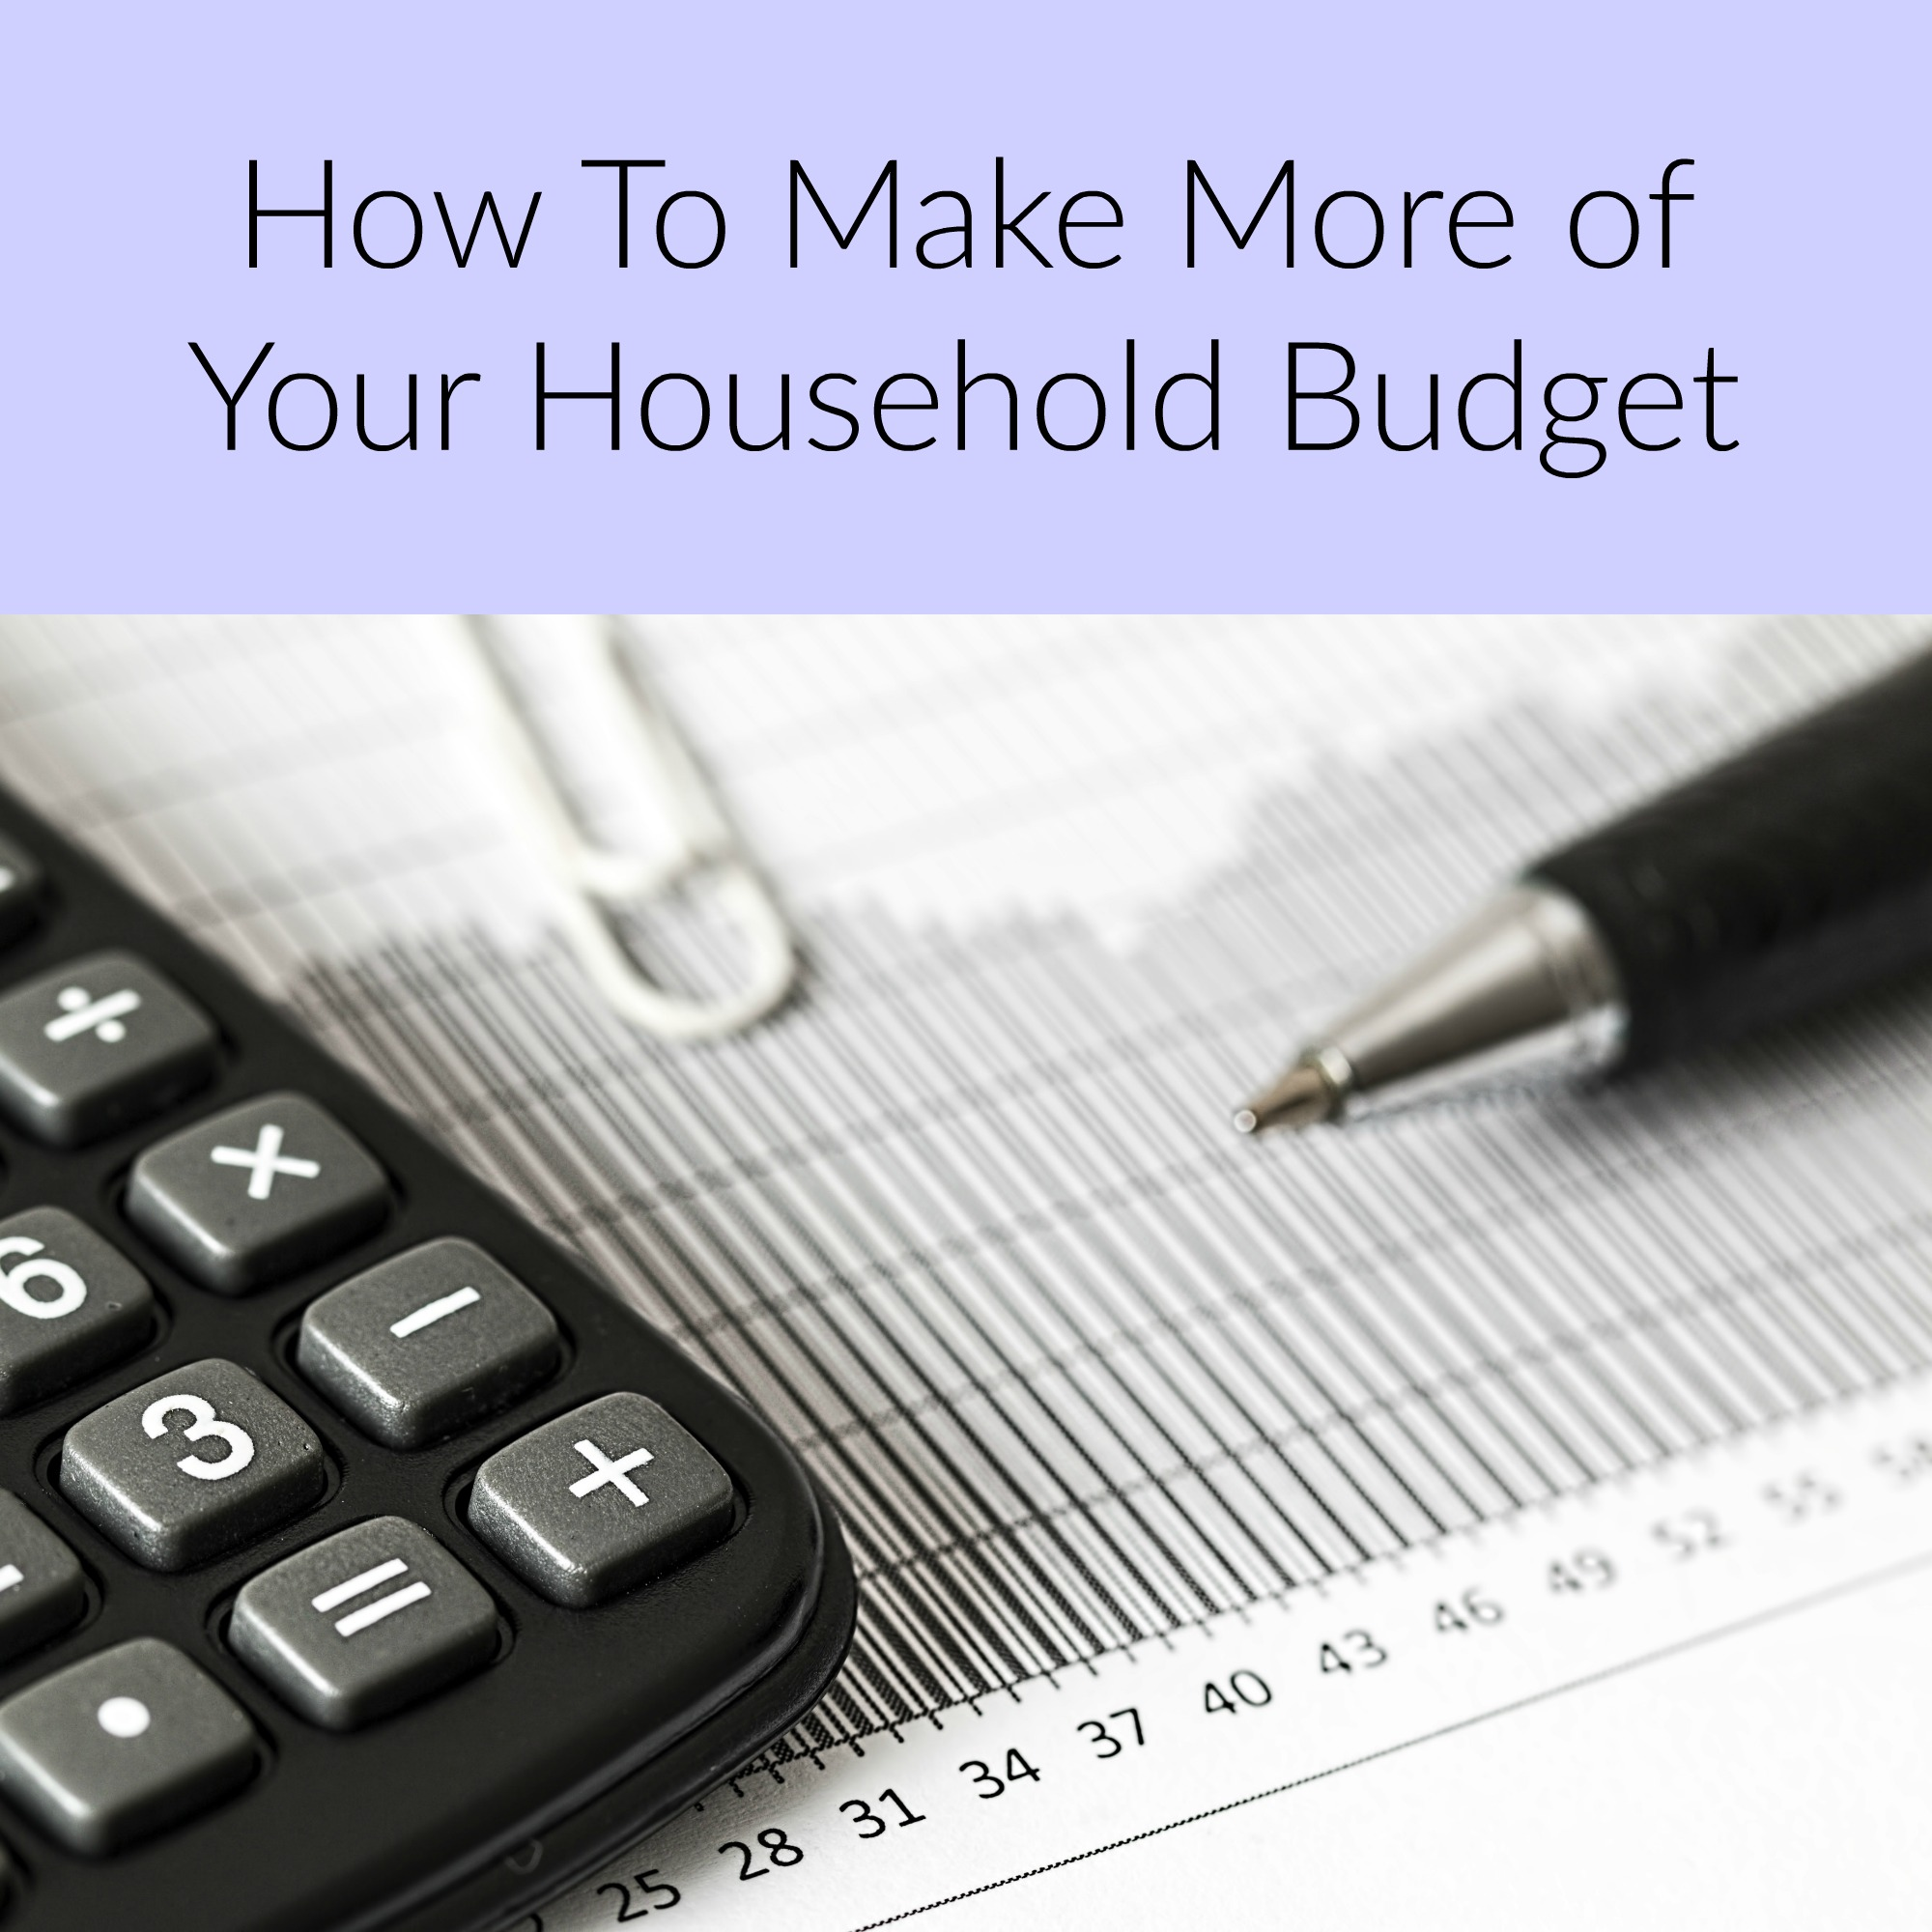 How To Make More of Your Household Budget